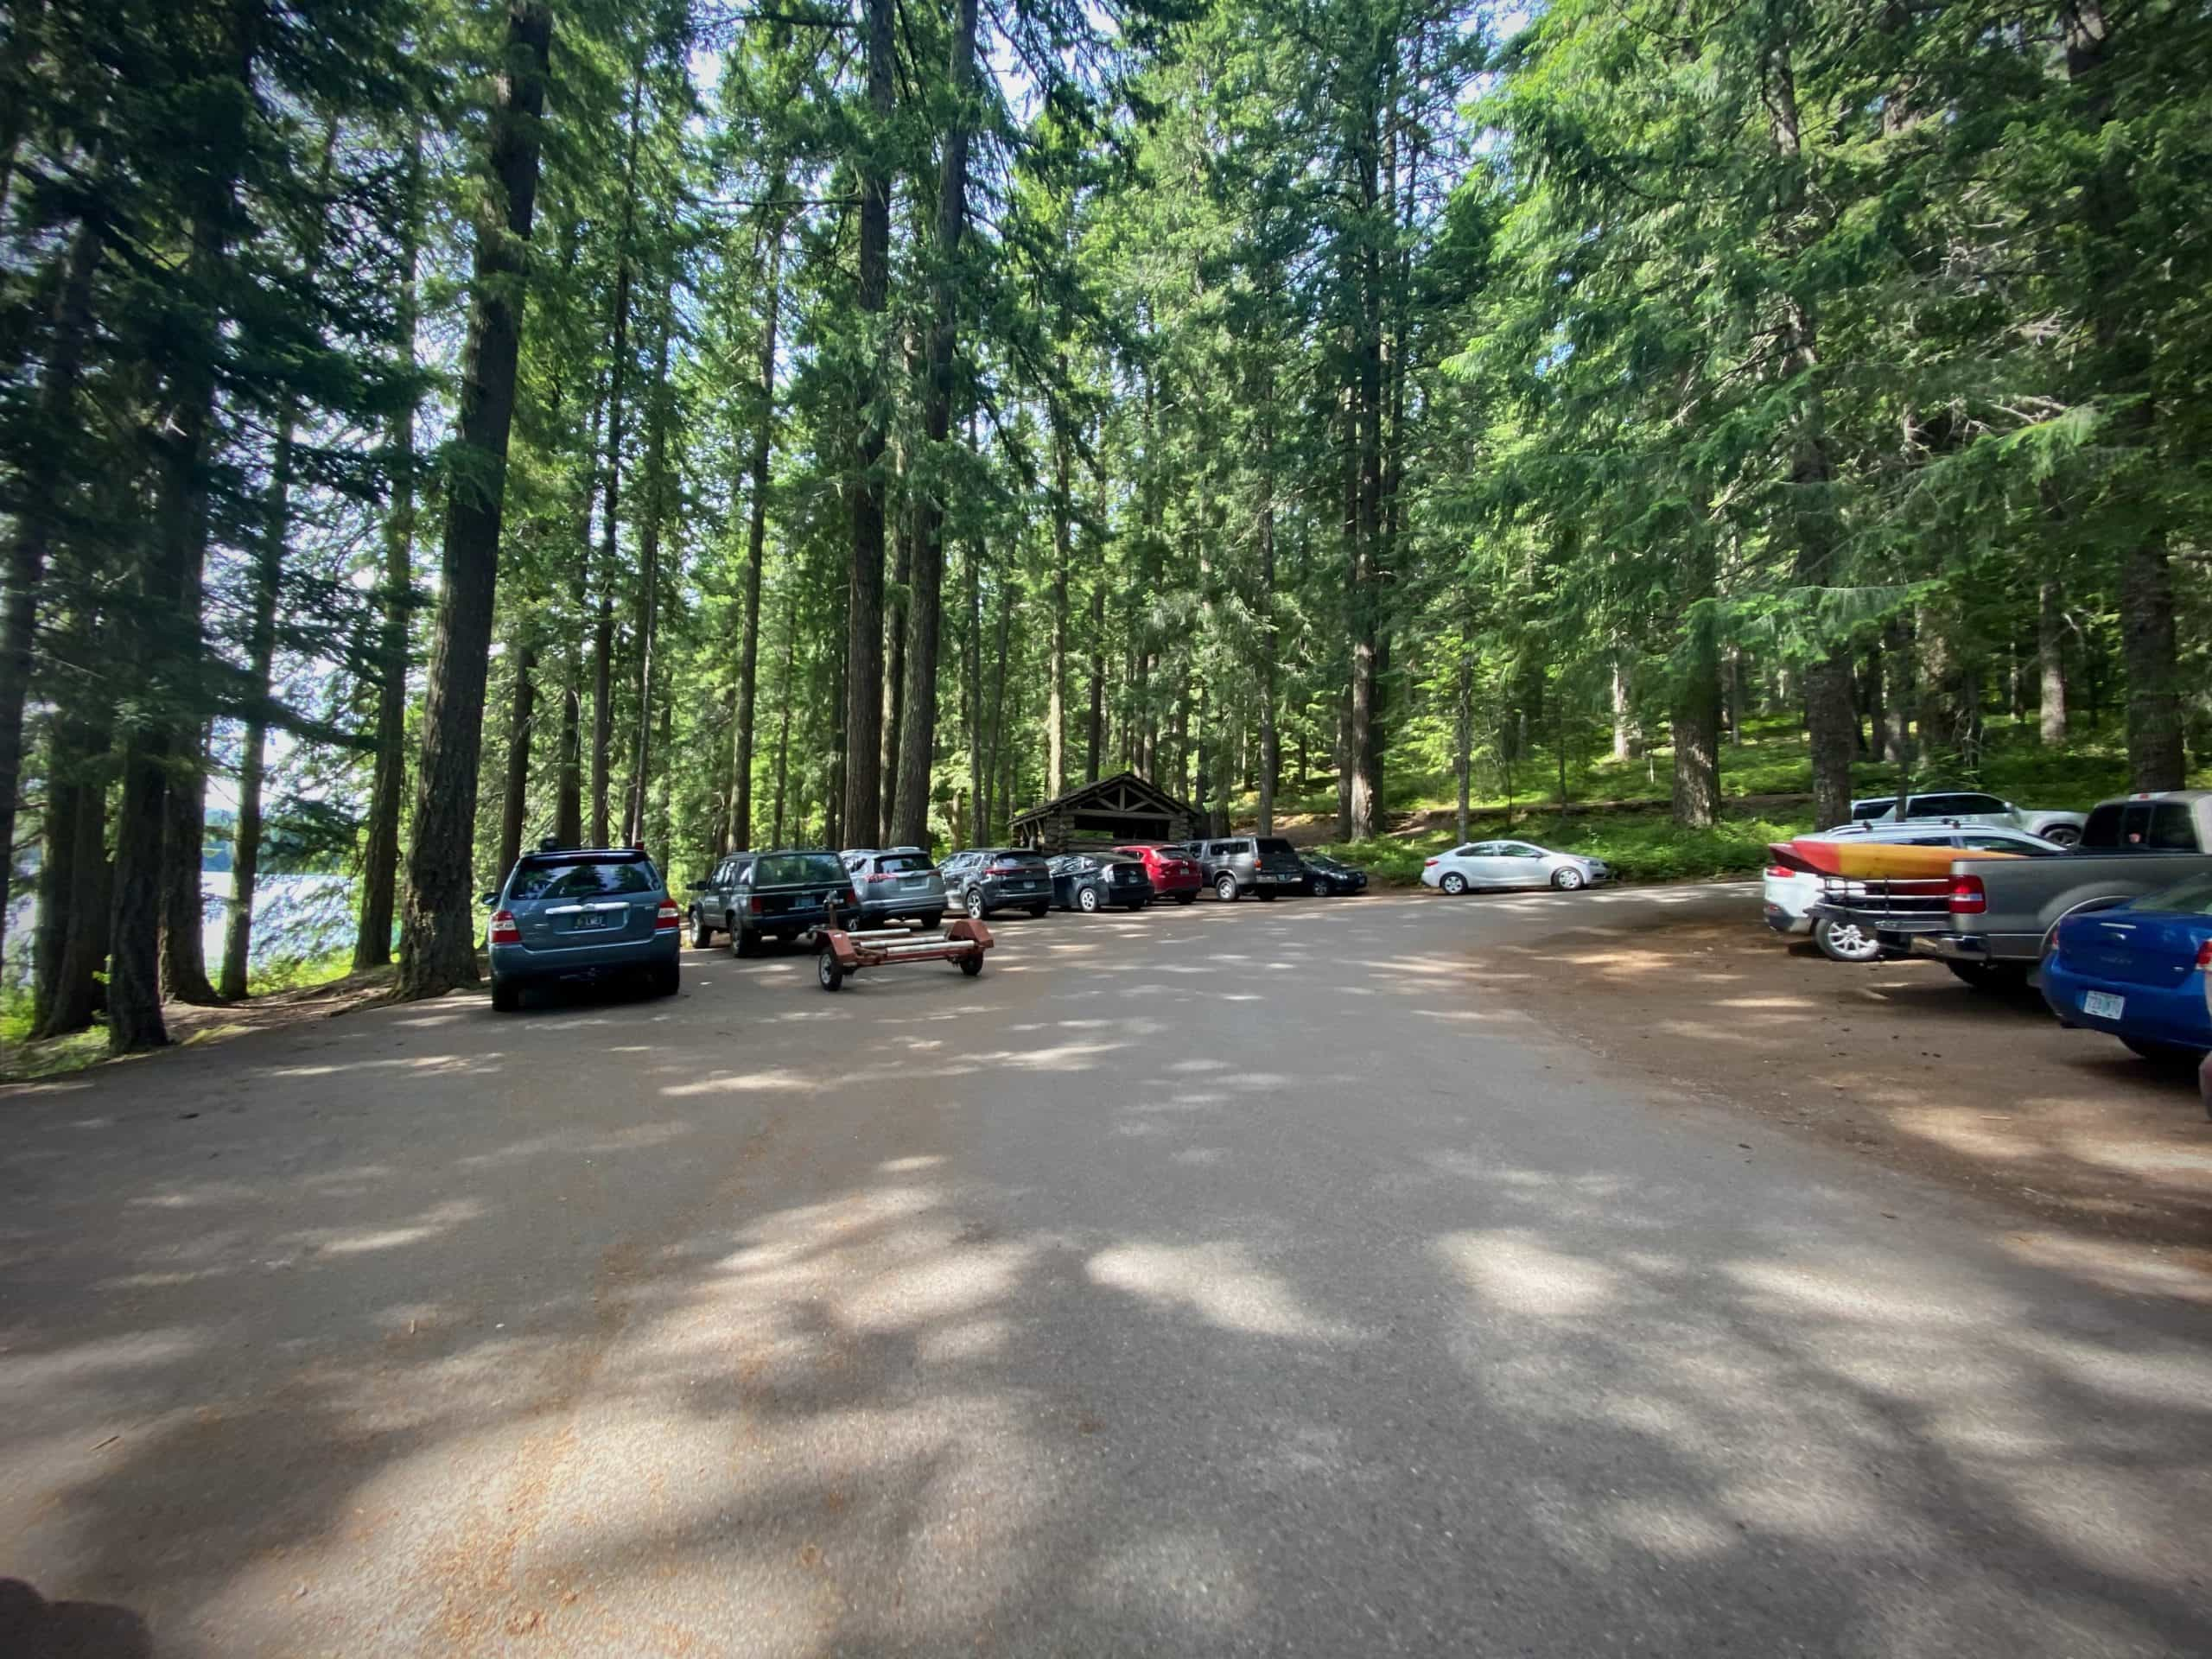 The parking area at the start, Clear Lake.